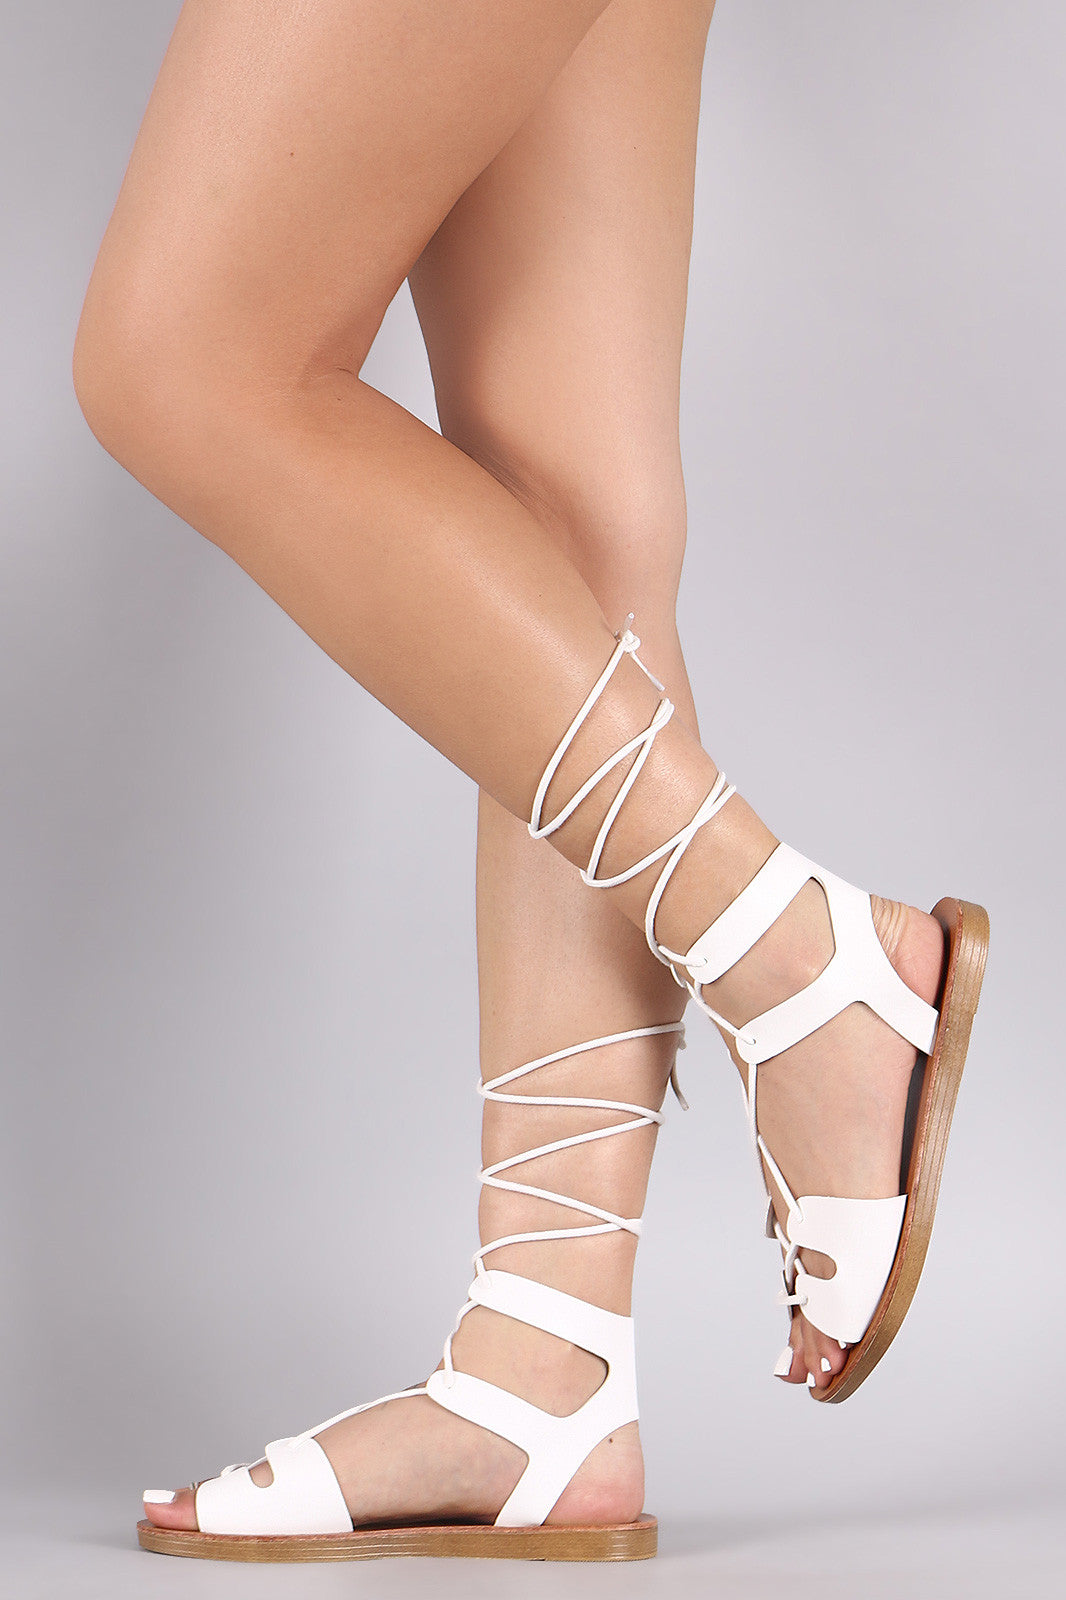 Breckelle Strappy Lace-Up Gladiator Flat Sandal - Thick 'N' Curvy Shop - 8